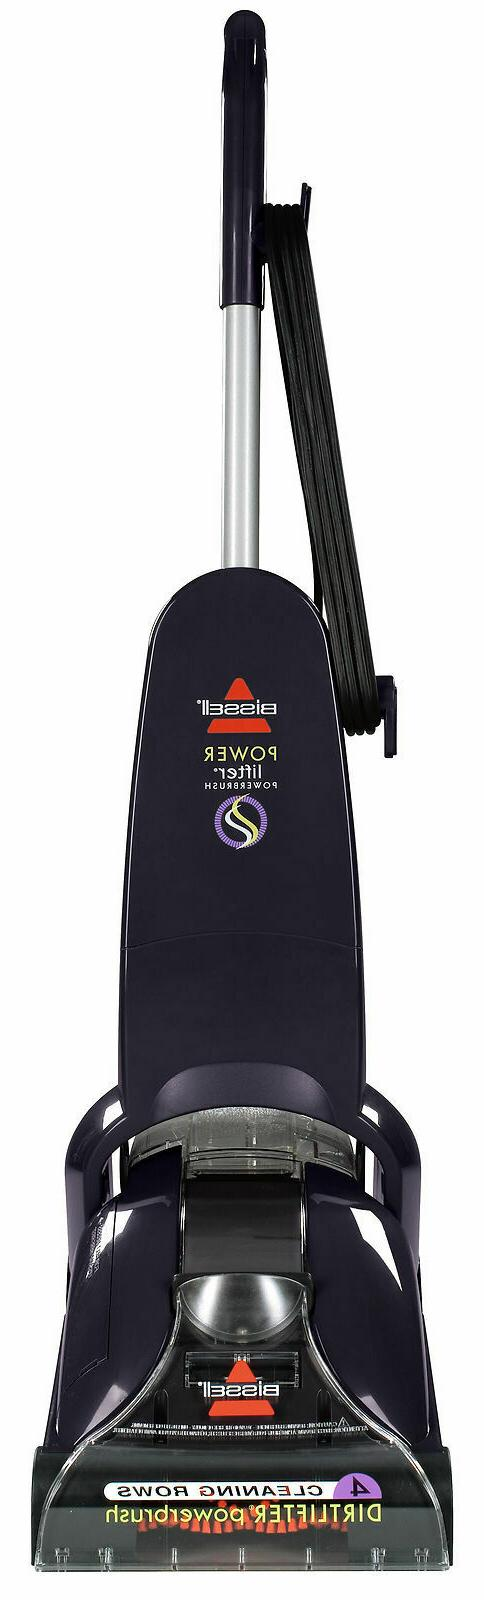 Bissell Upright Cleaner And Shampooer for Carpet